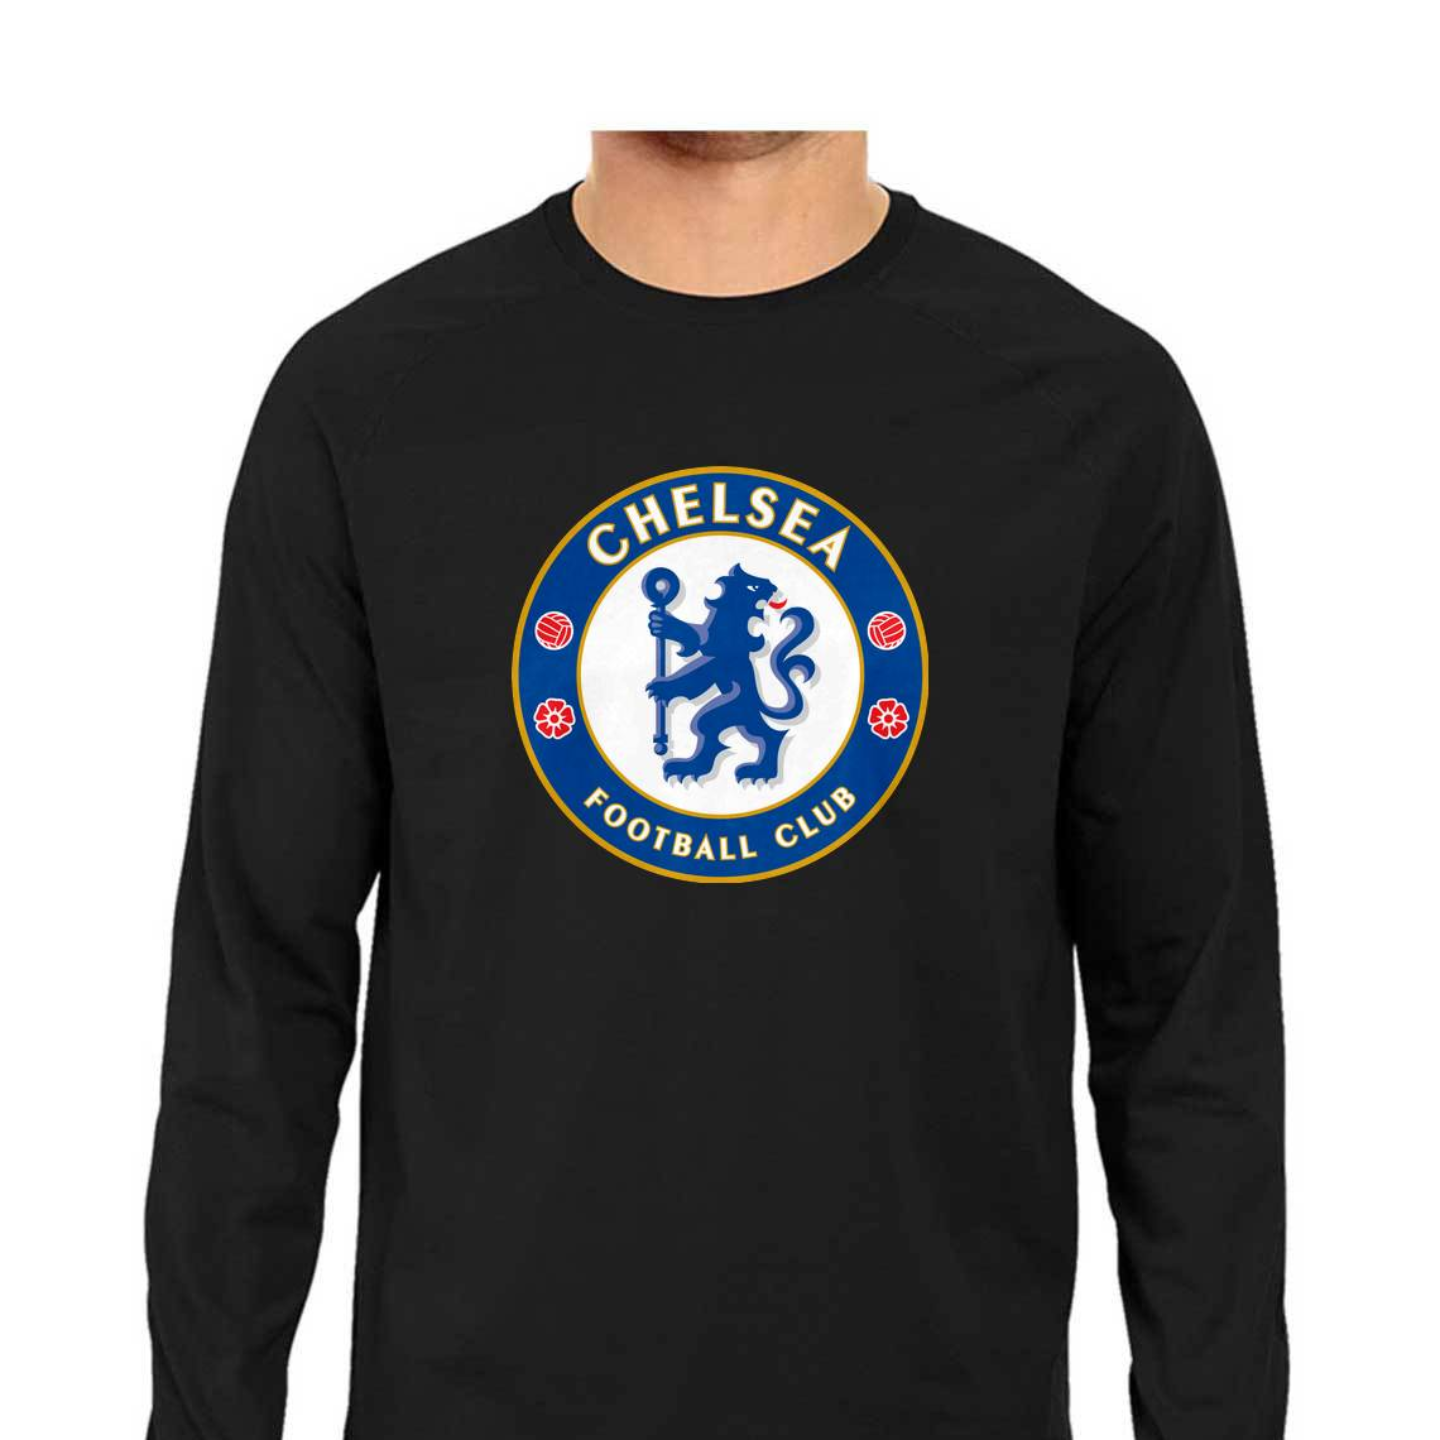 Chelsea FC Full Sleeves Tshirt